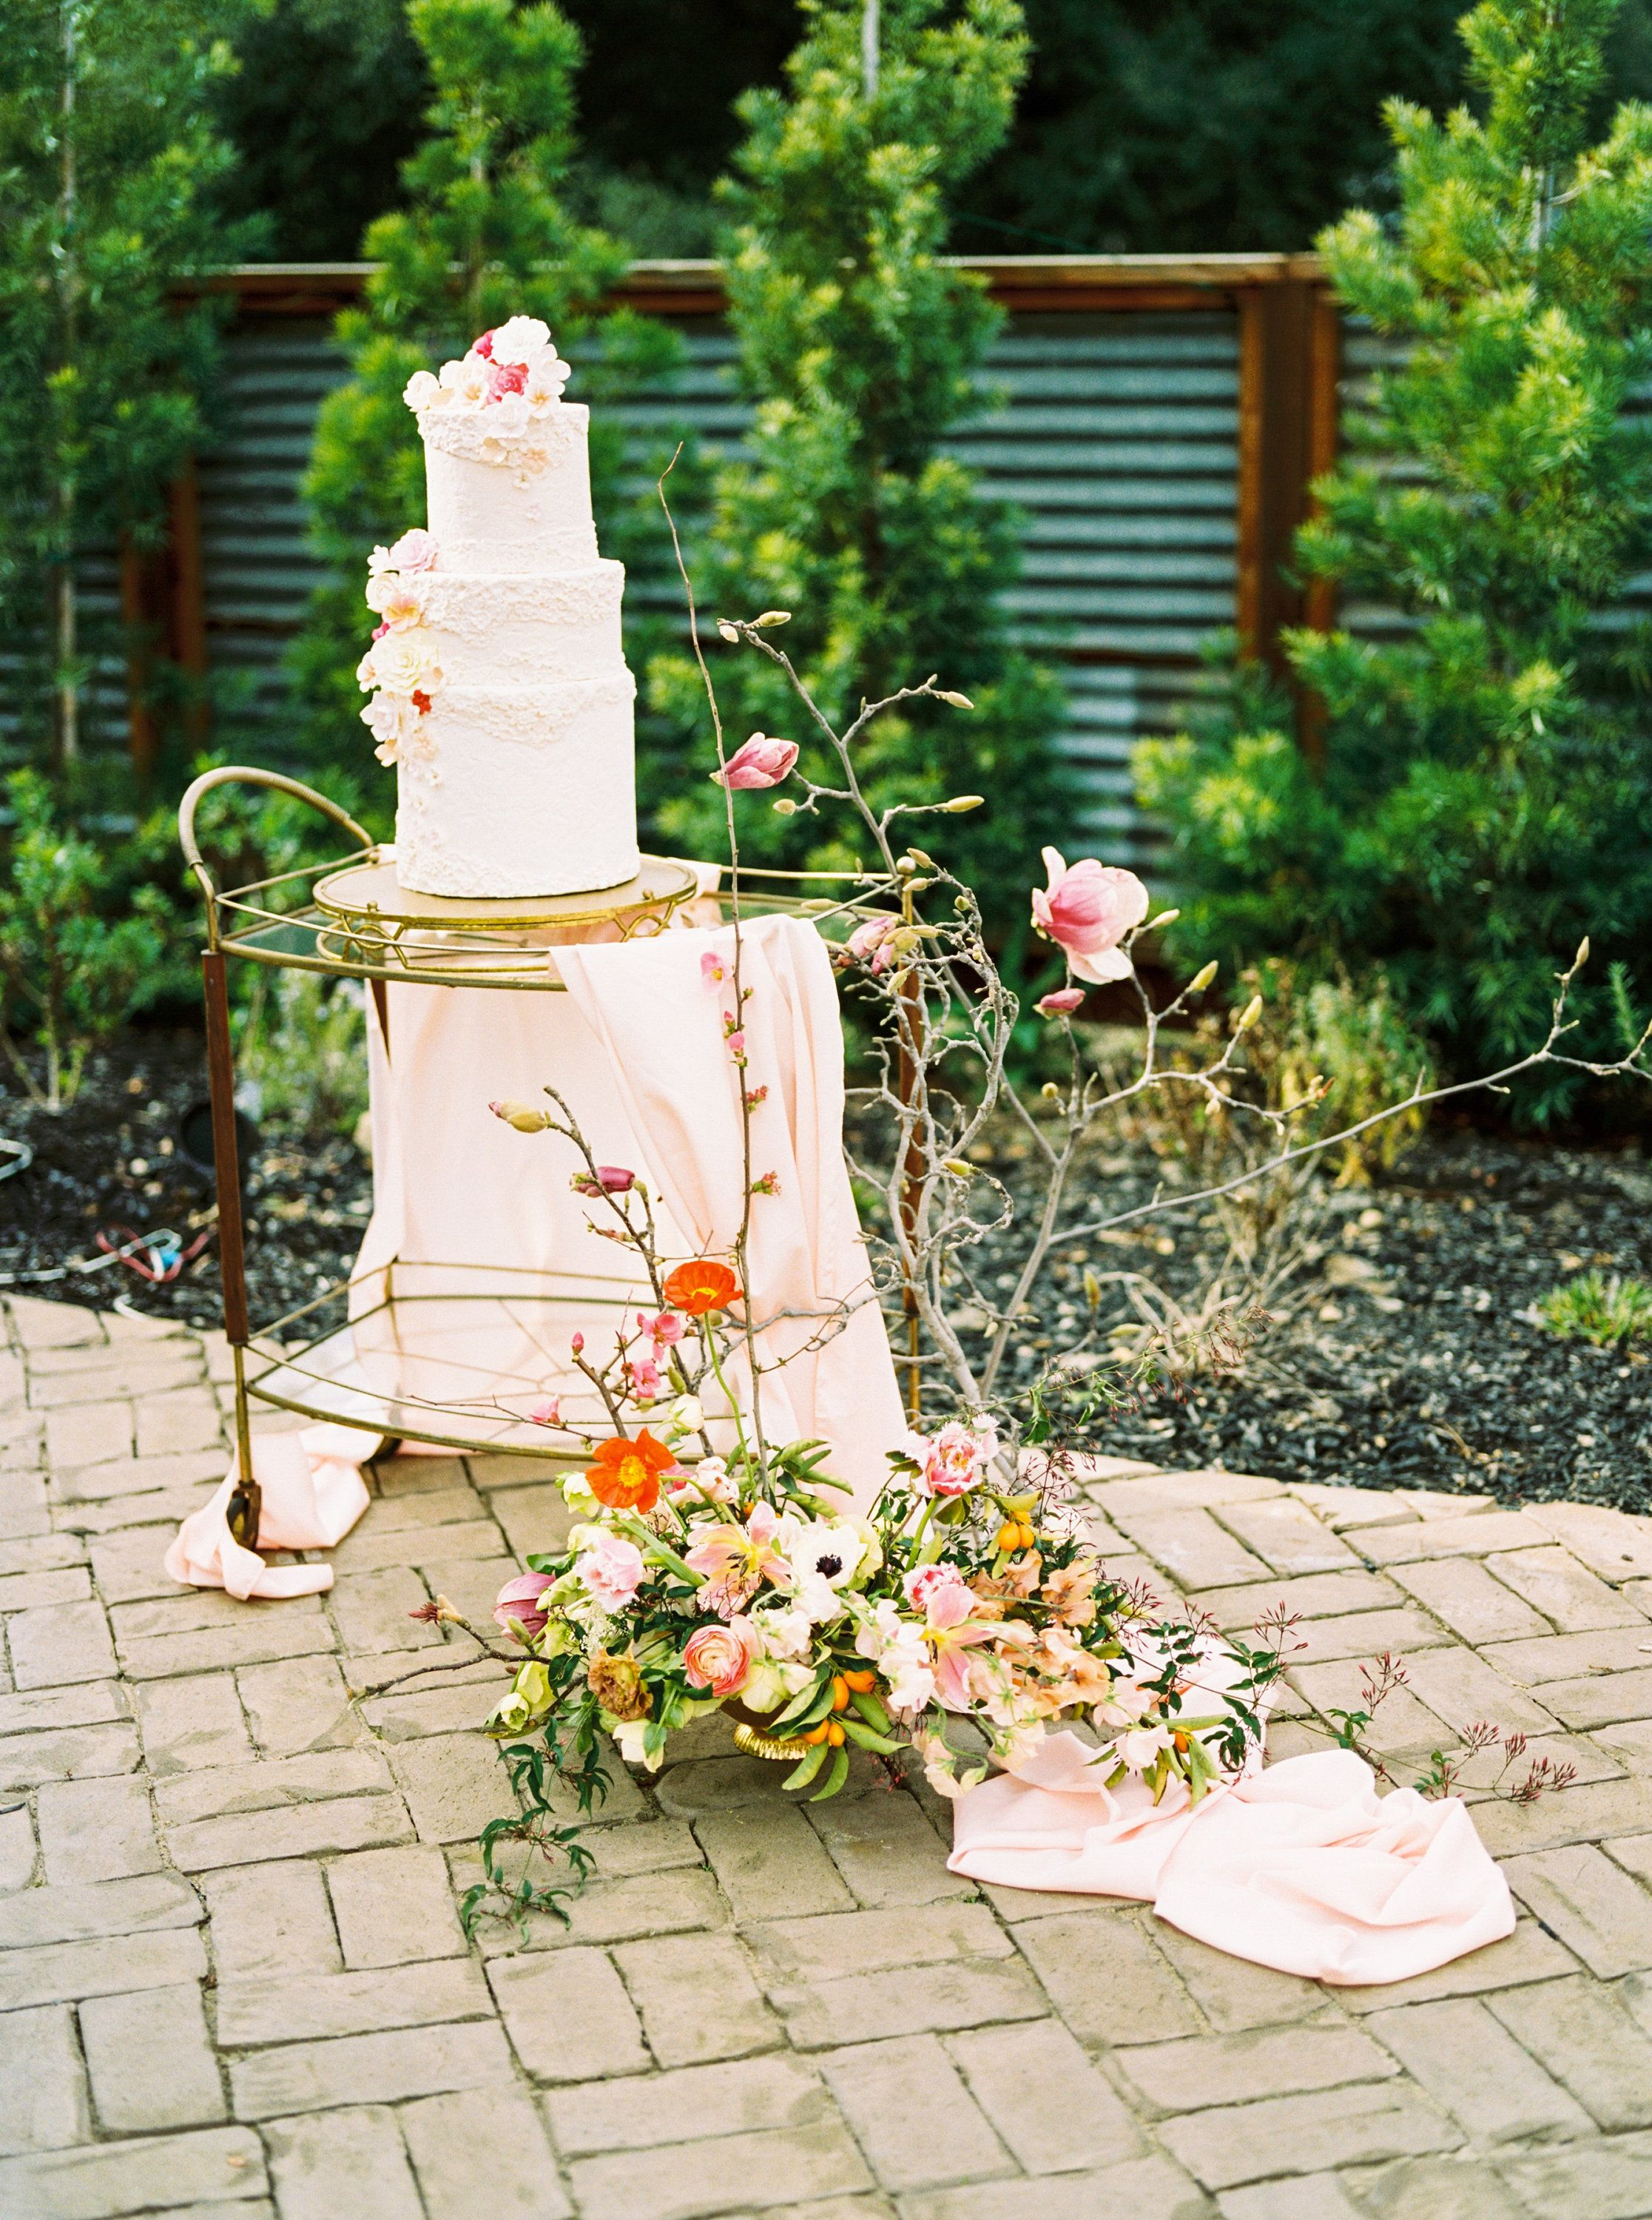 Wedding cake table decor ideas  A silk table runner goes a long way in enhancing the decor of your